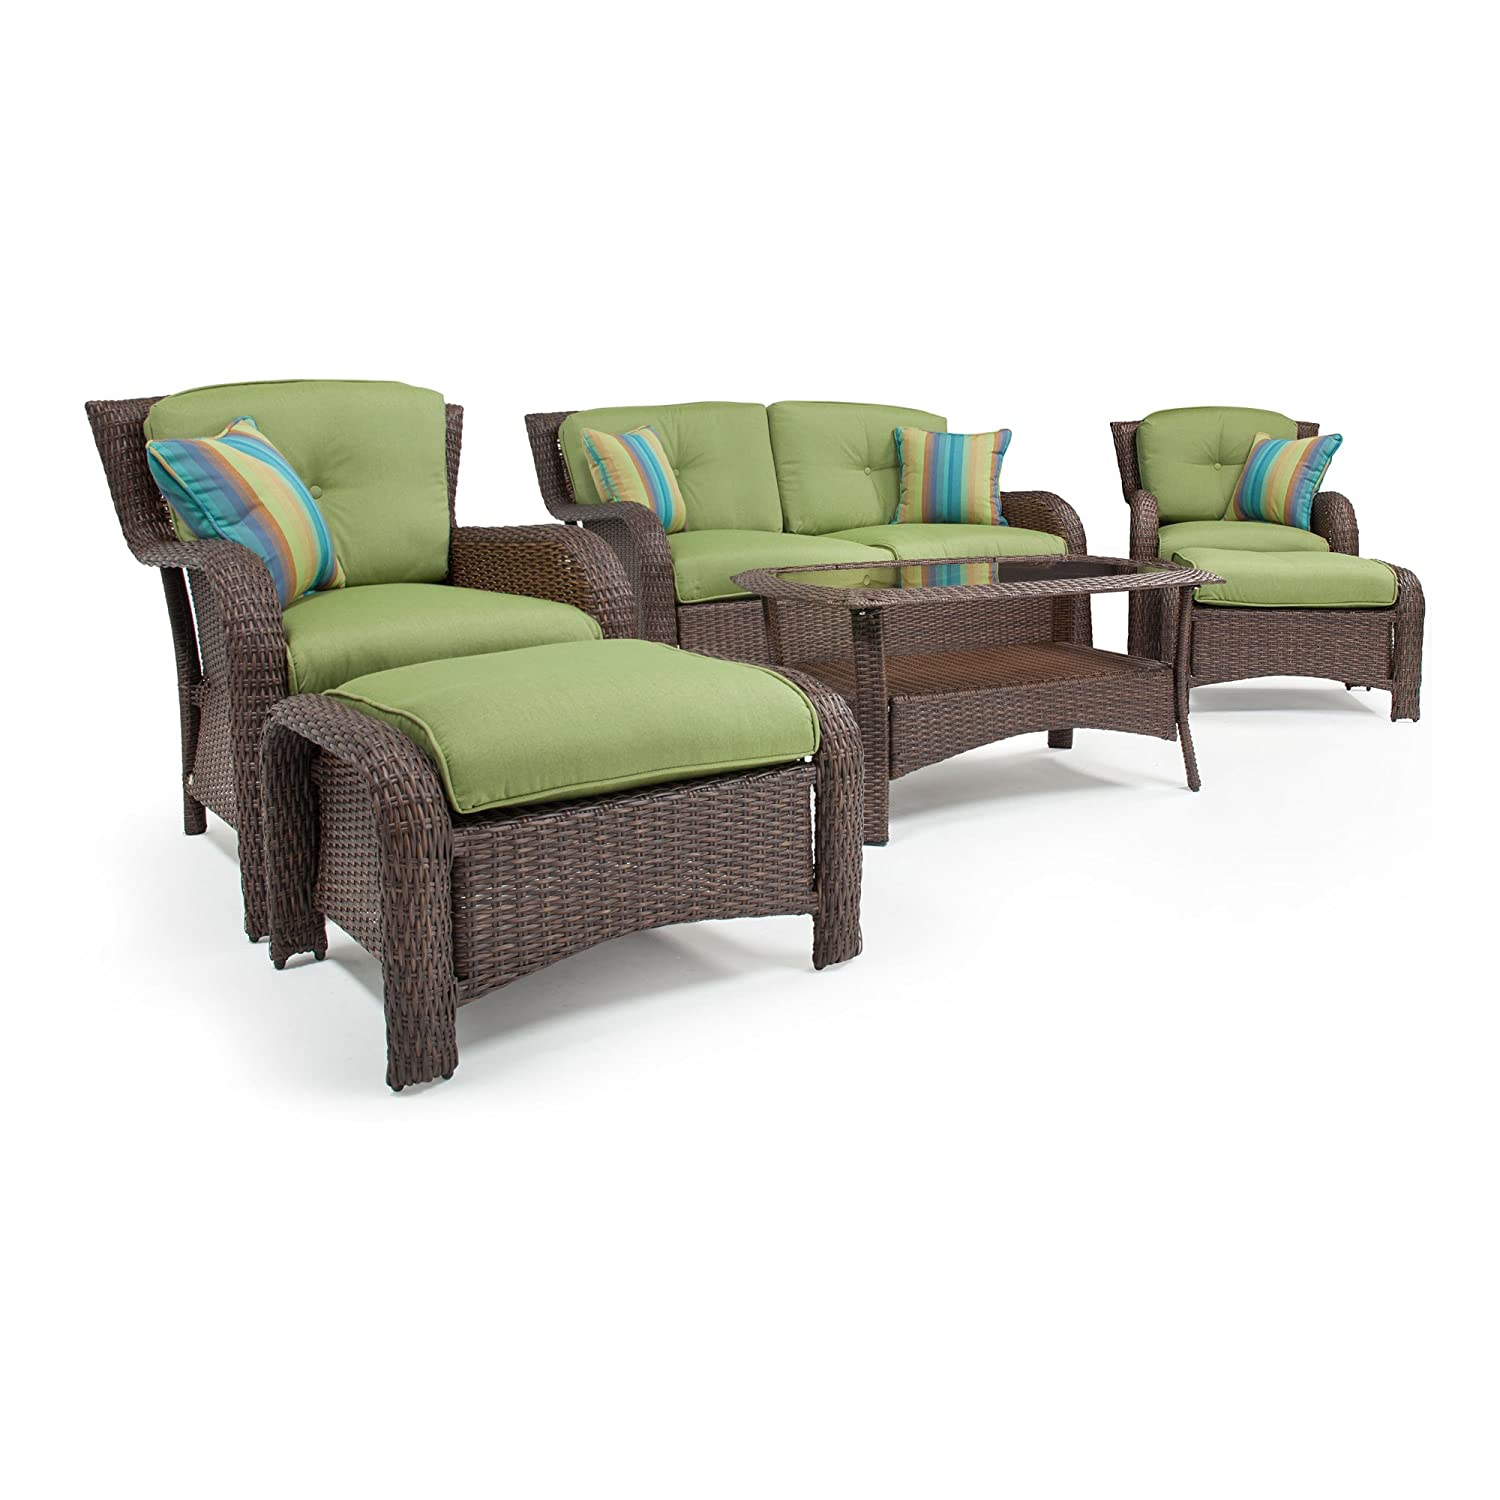 La-Z-Boy Outdoor Sawyer 6 Piece Resin Wicker Patio Furniture Conversation  Set (Cilantro Green) With All Weather Sunbrella Cushions - La-Z-Boy Outdoor Sawyer 6 Piece Resin Wicker Patio Furniture